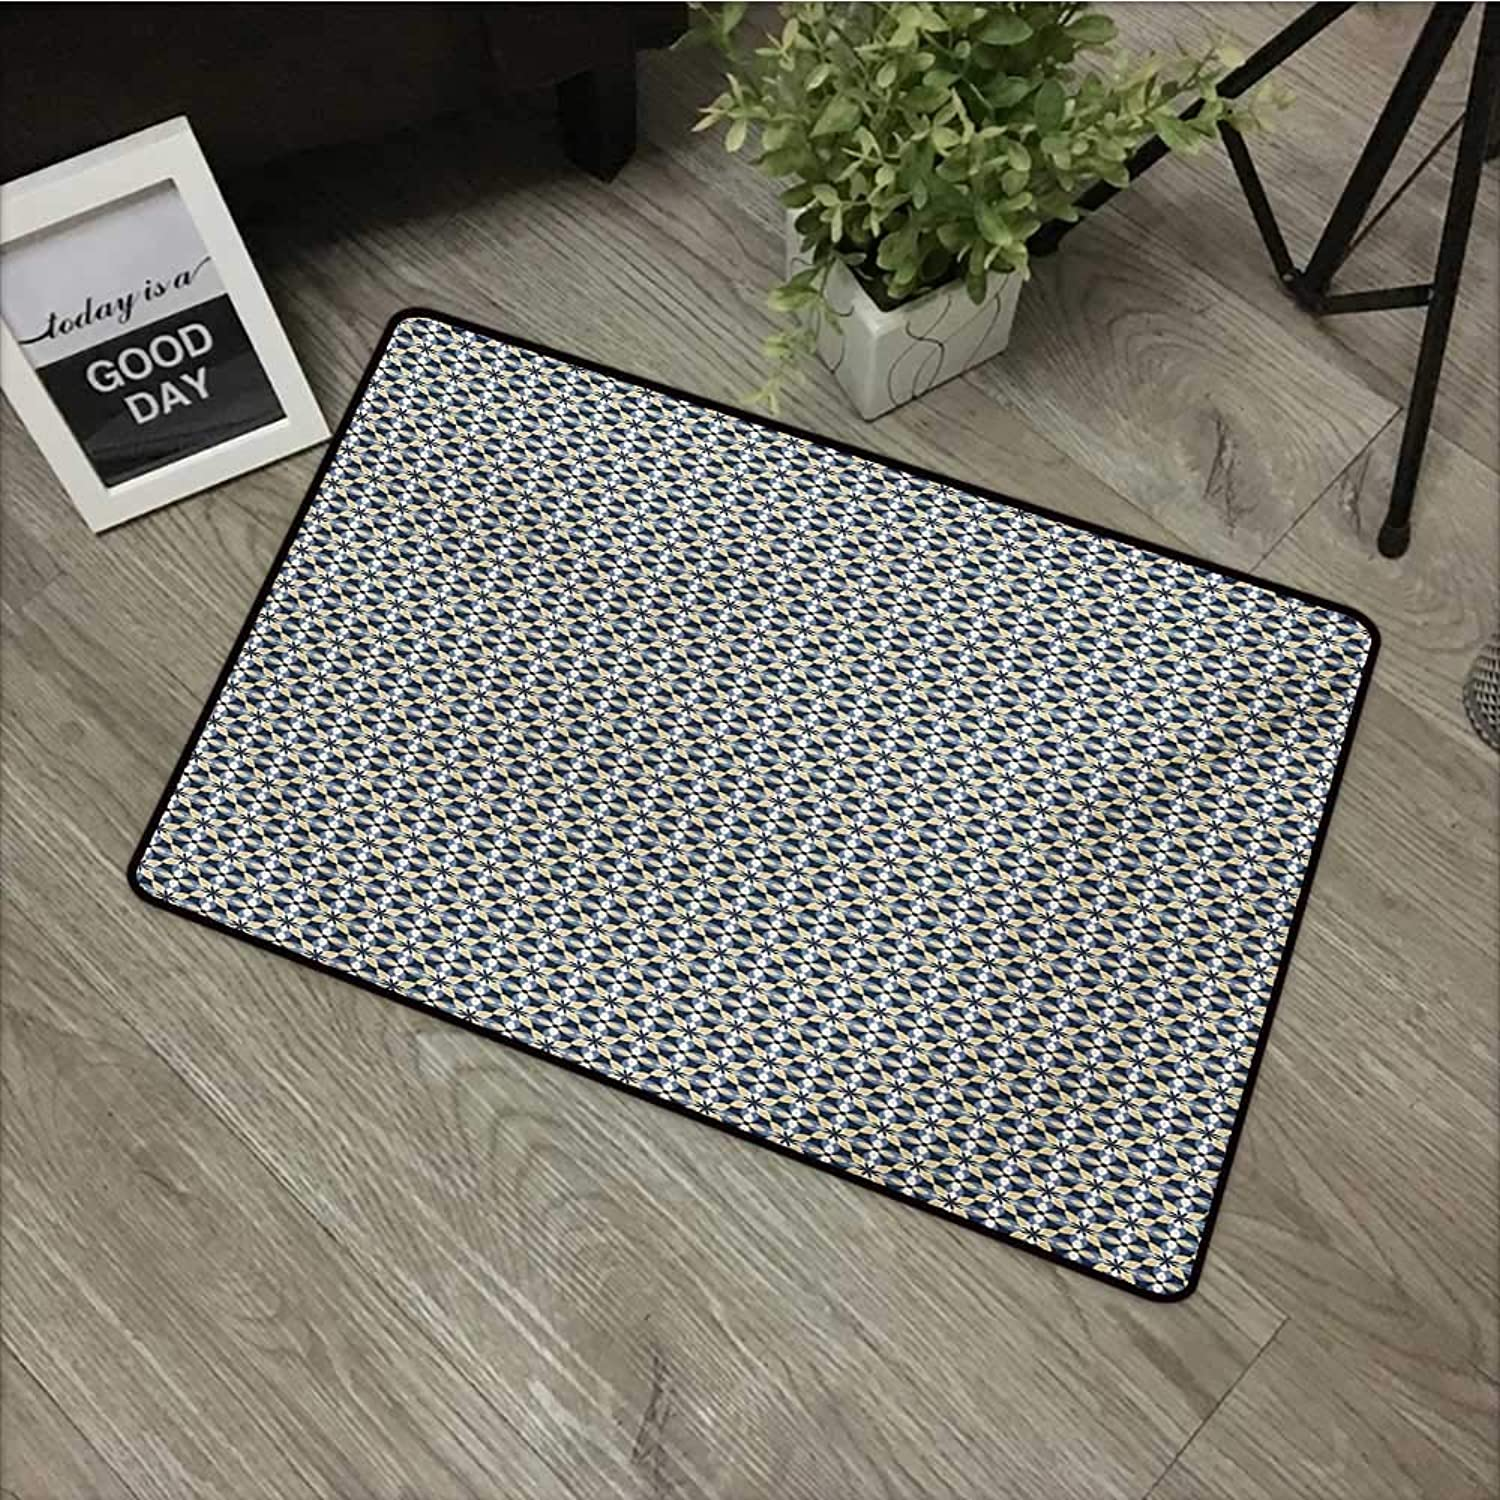 Clear Printed Pattern Door mat W35 x L59 INCH Floral,Overlapping Shapes Symmetrical Ornament Tile in bluee and Yellow Shades,Dark bluee Pale Mustard Non-Slip Door Mat Carpet